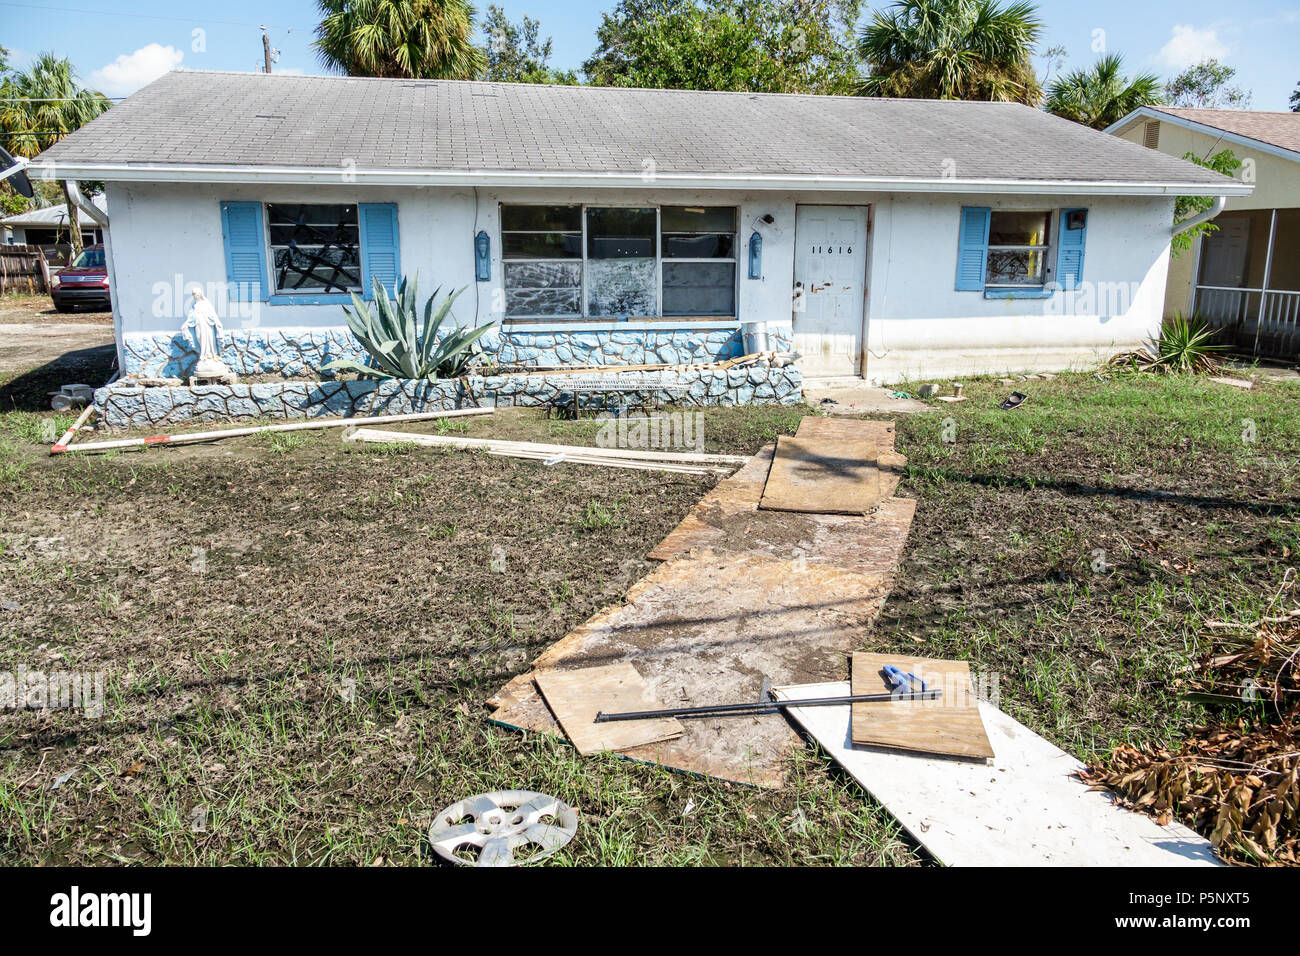 Bonita Springs Florida after Hurricane Irma damage destruction aftermath flooding house home muddy yard plywood pathway exterior flood depth water lin - Stock Image